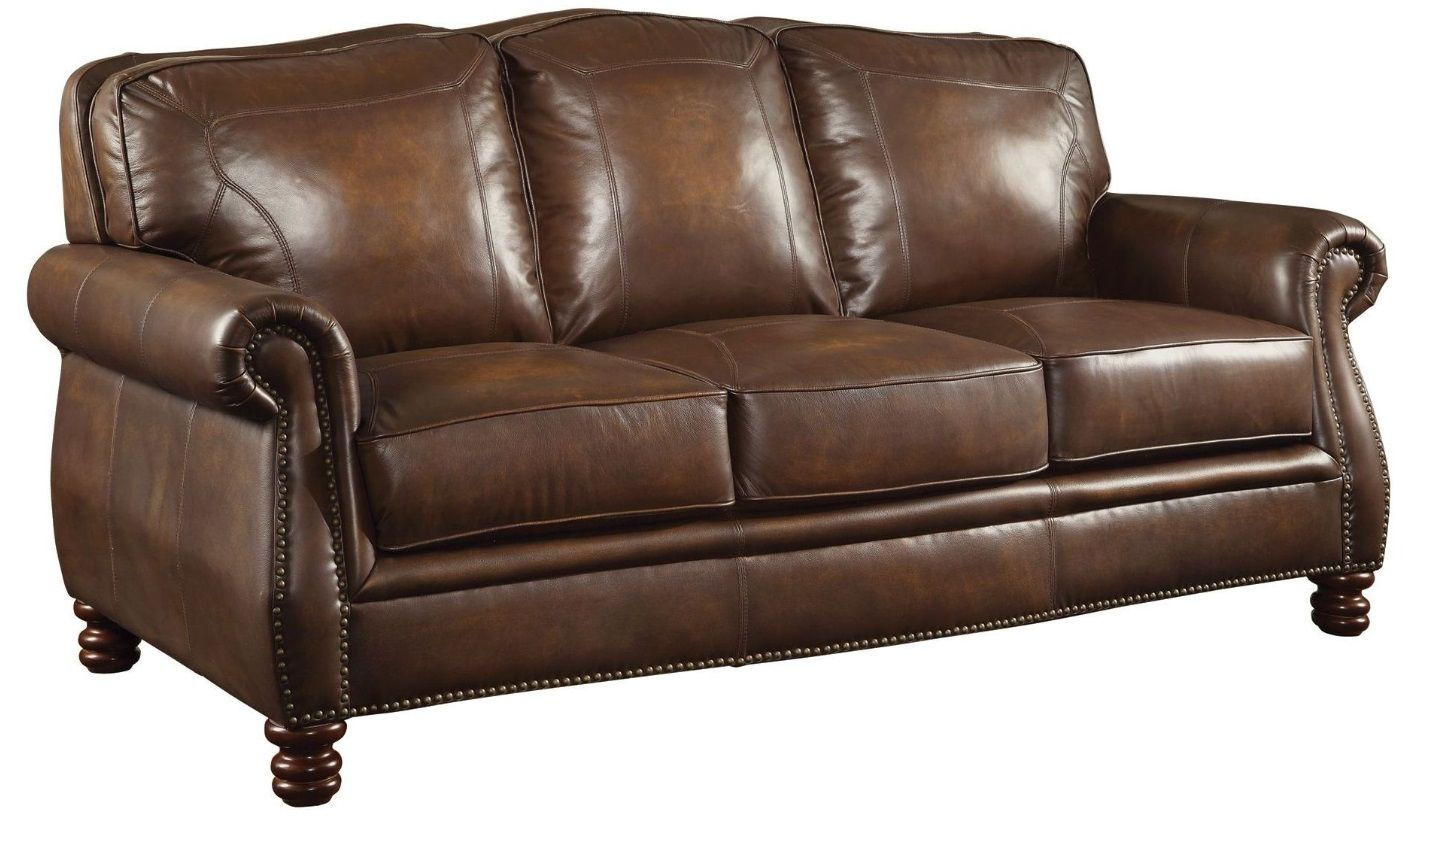 fancy sectional recliner sofas architecture-Lovely Sectional Recliner sofas Architecture